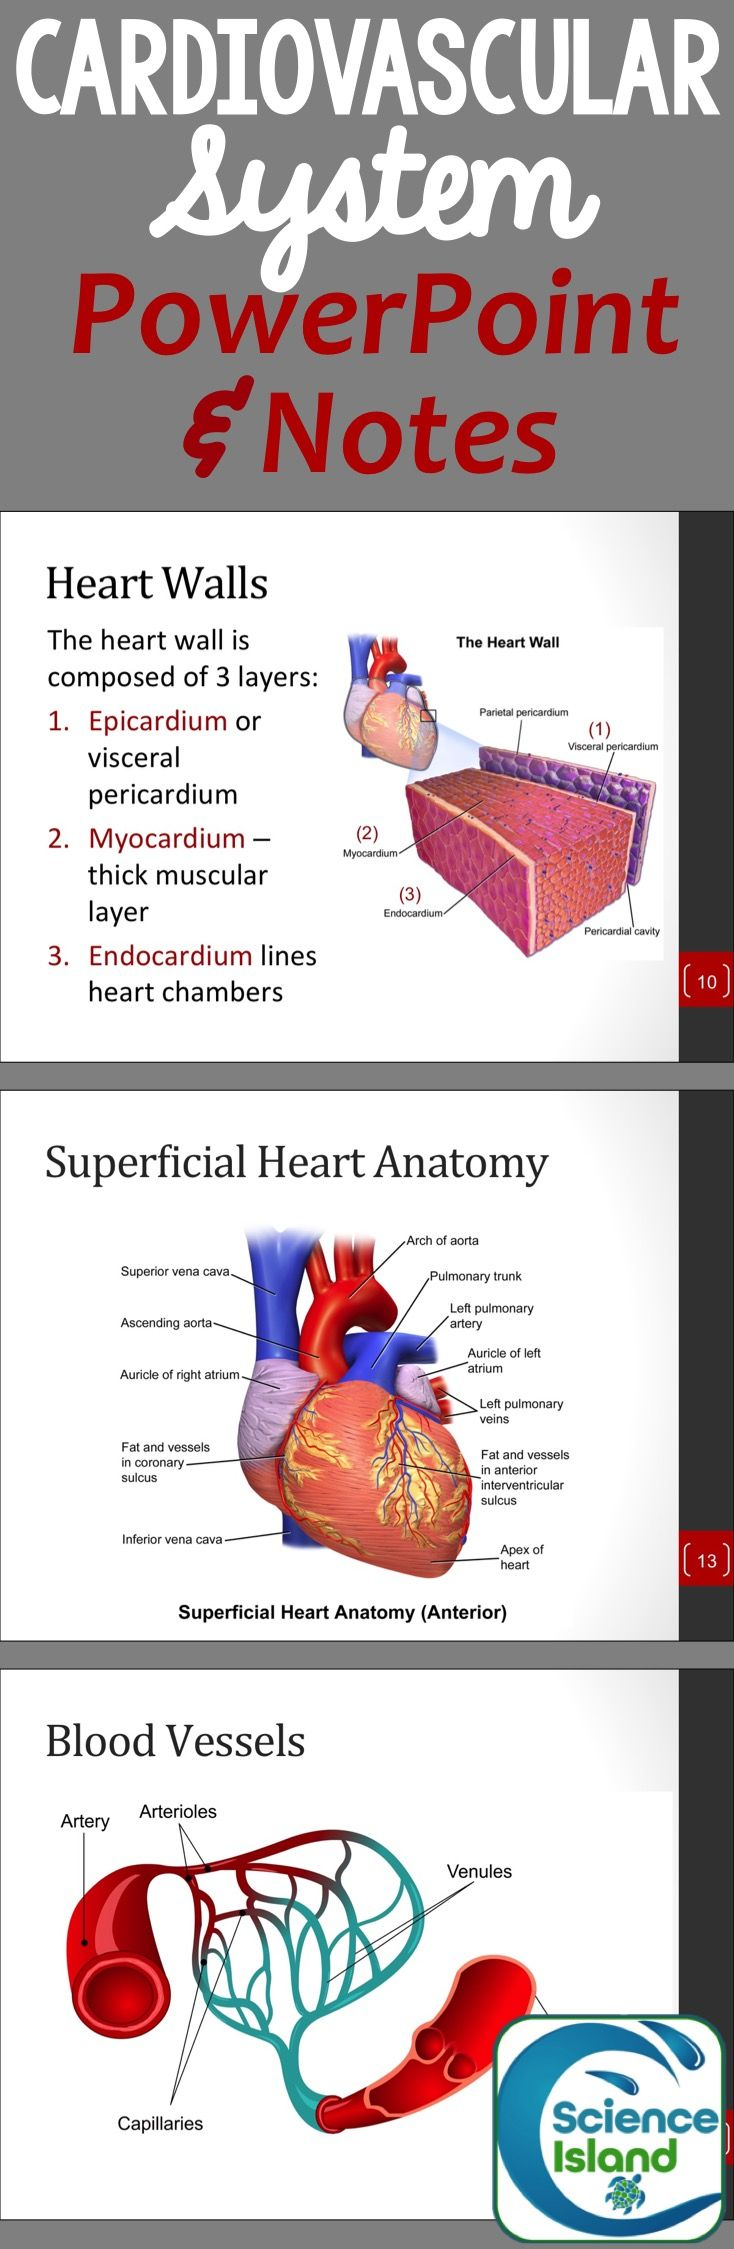 Cardiovascular System PowerPoint and Notes   Pinterest   Anatomía